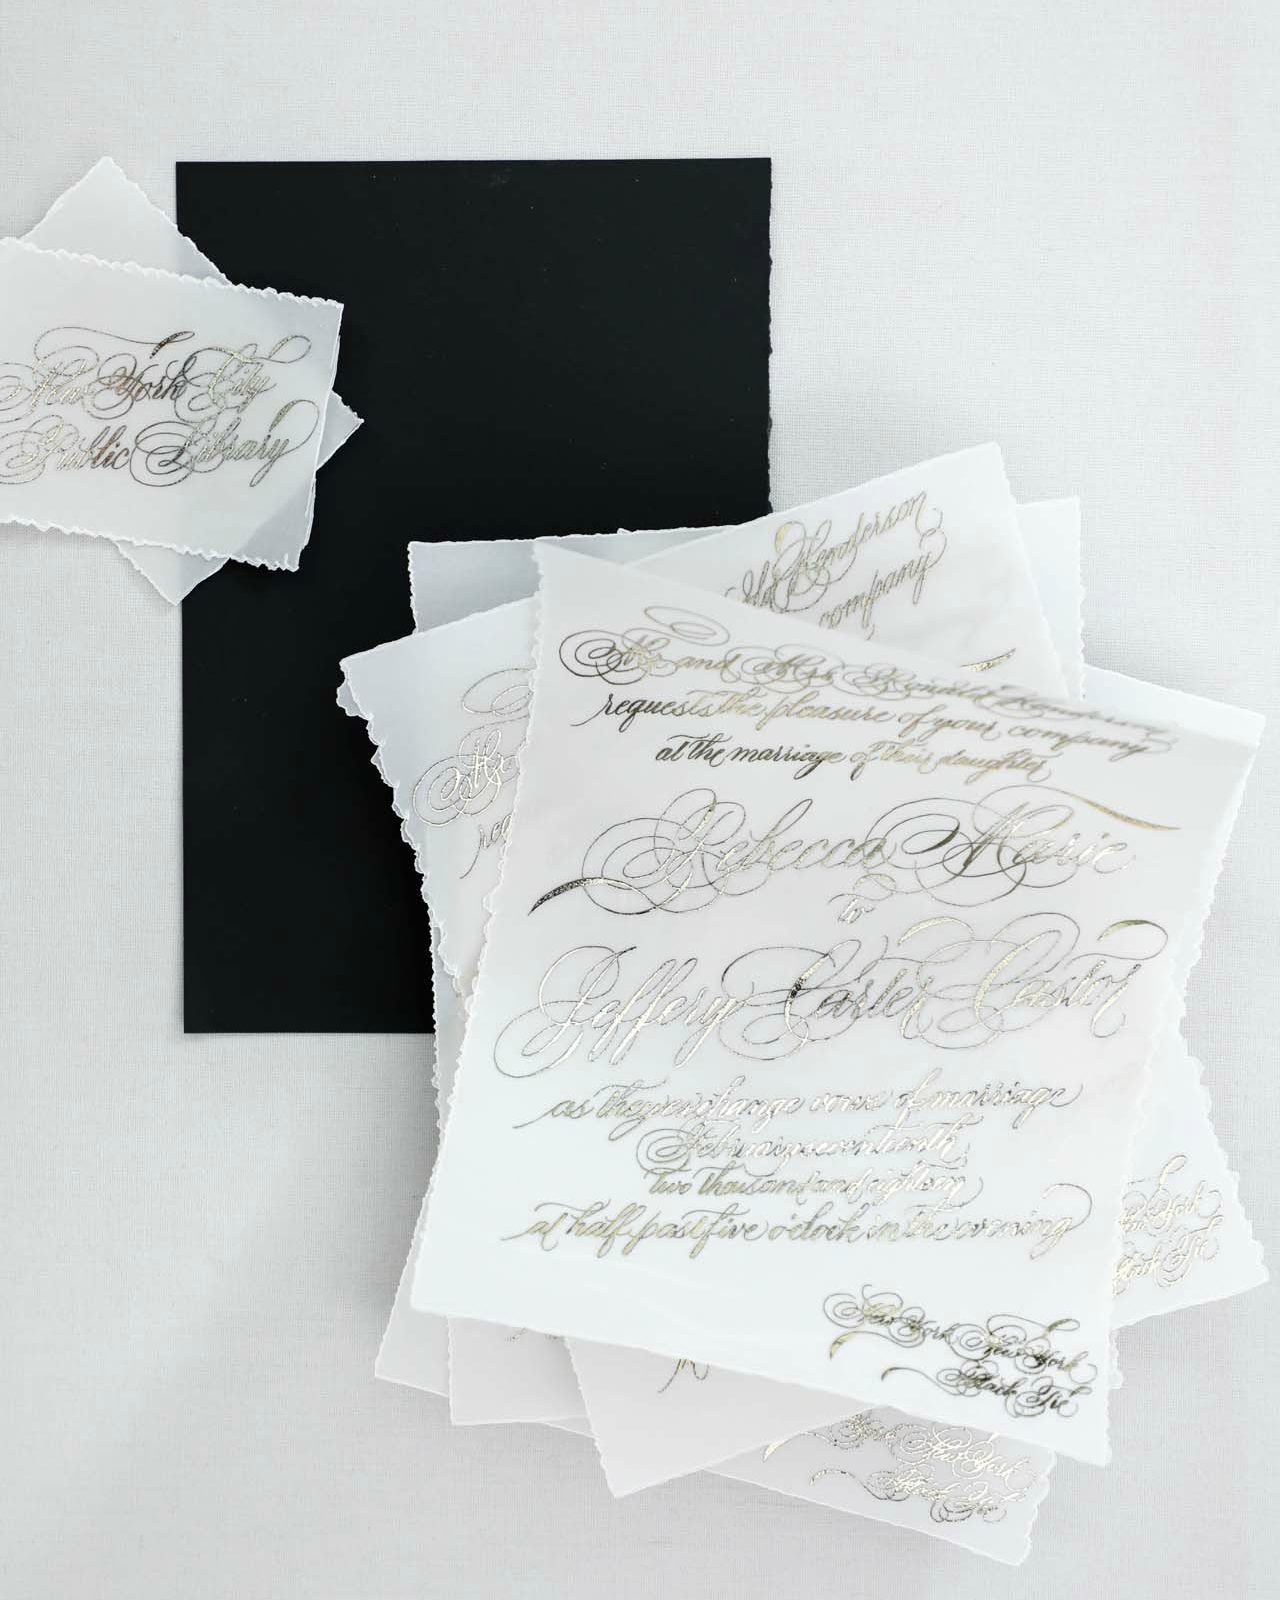 Black and White Calligraphy and Watercolor Wedding Invitations by Design House of Moira